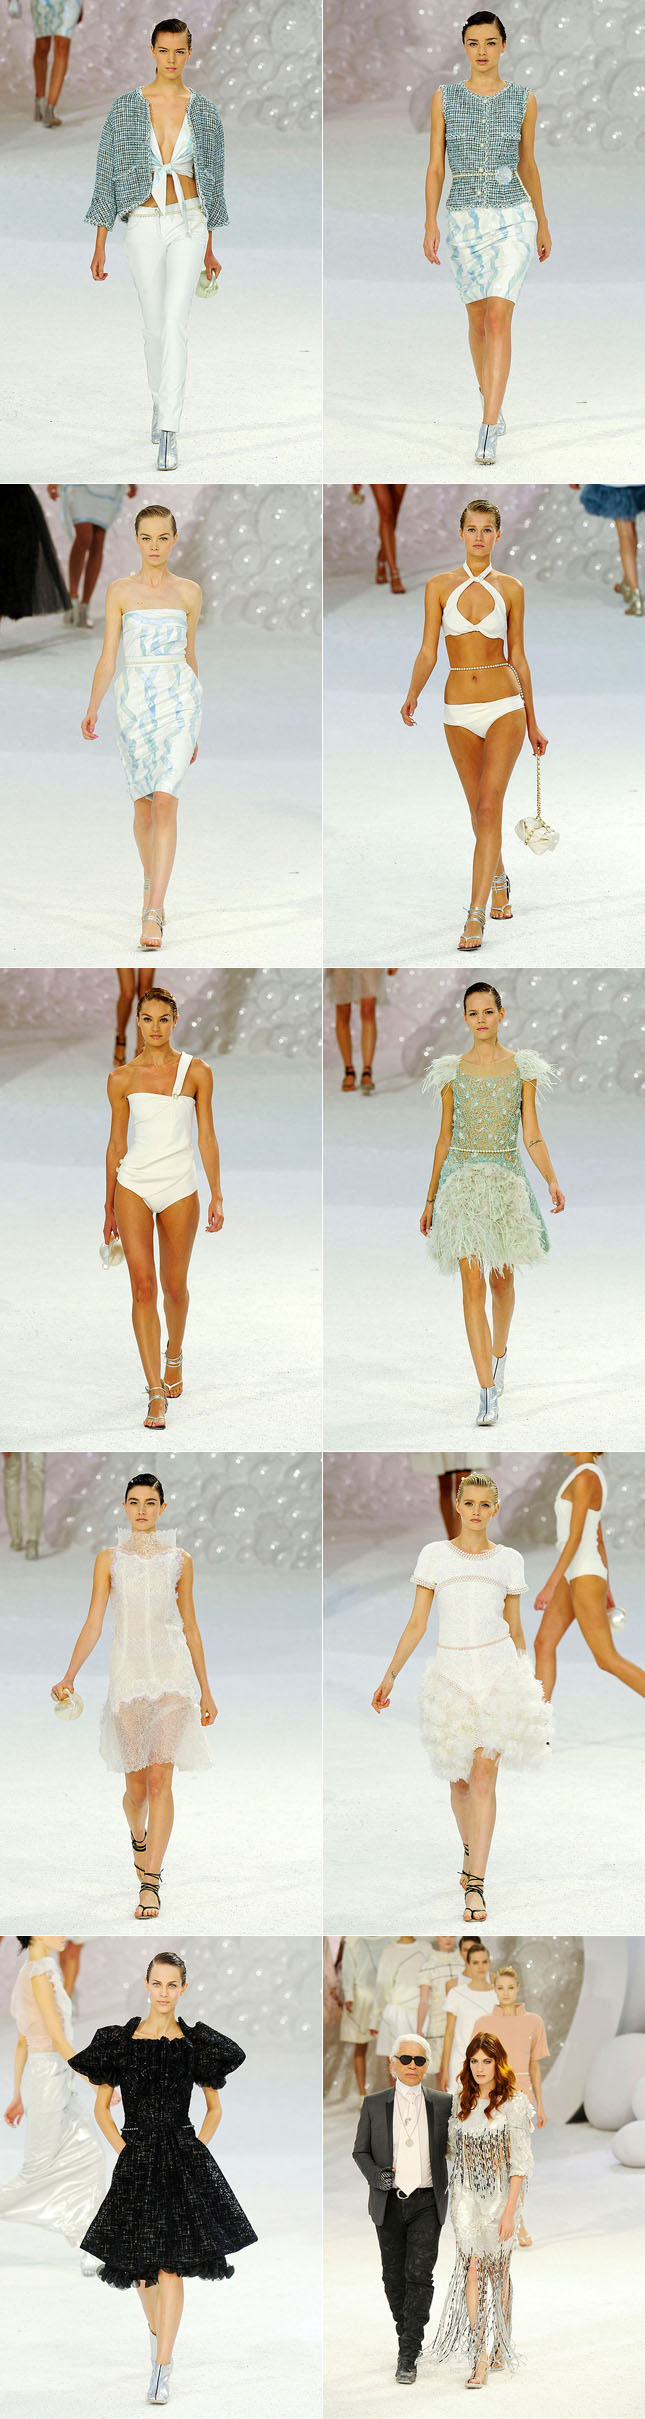 Chanel Verão 2012 Desfile Paris Fashion Week